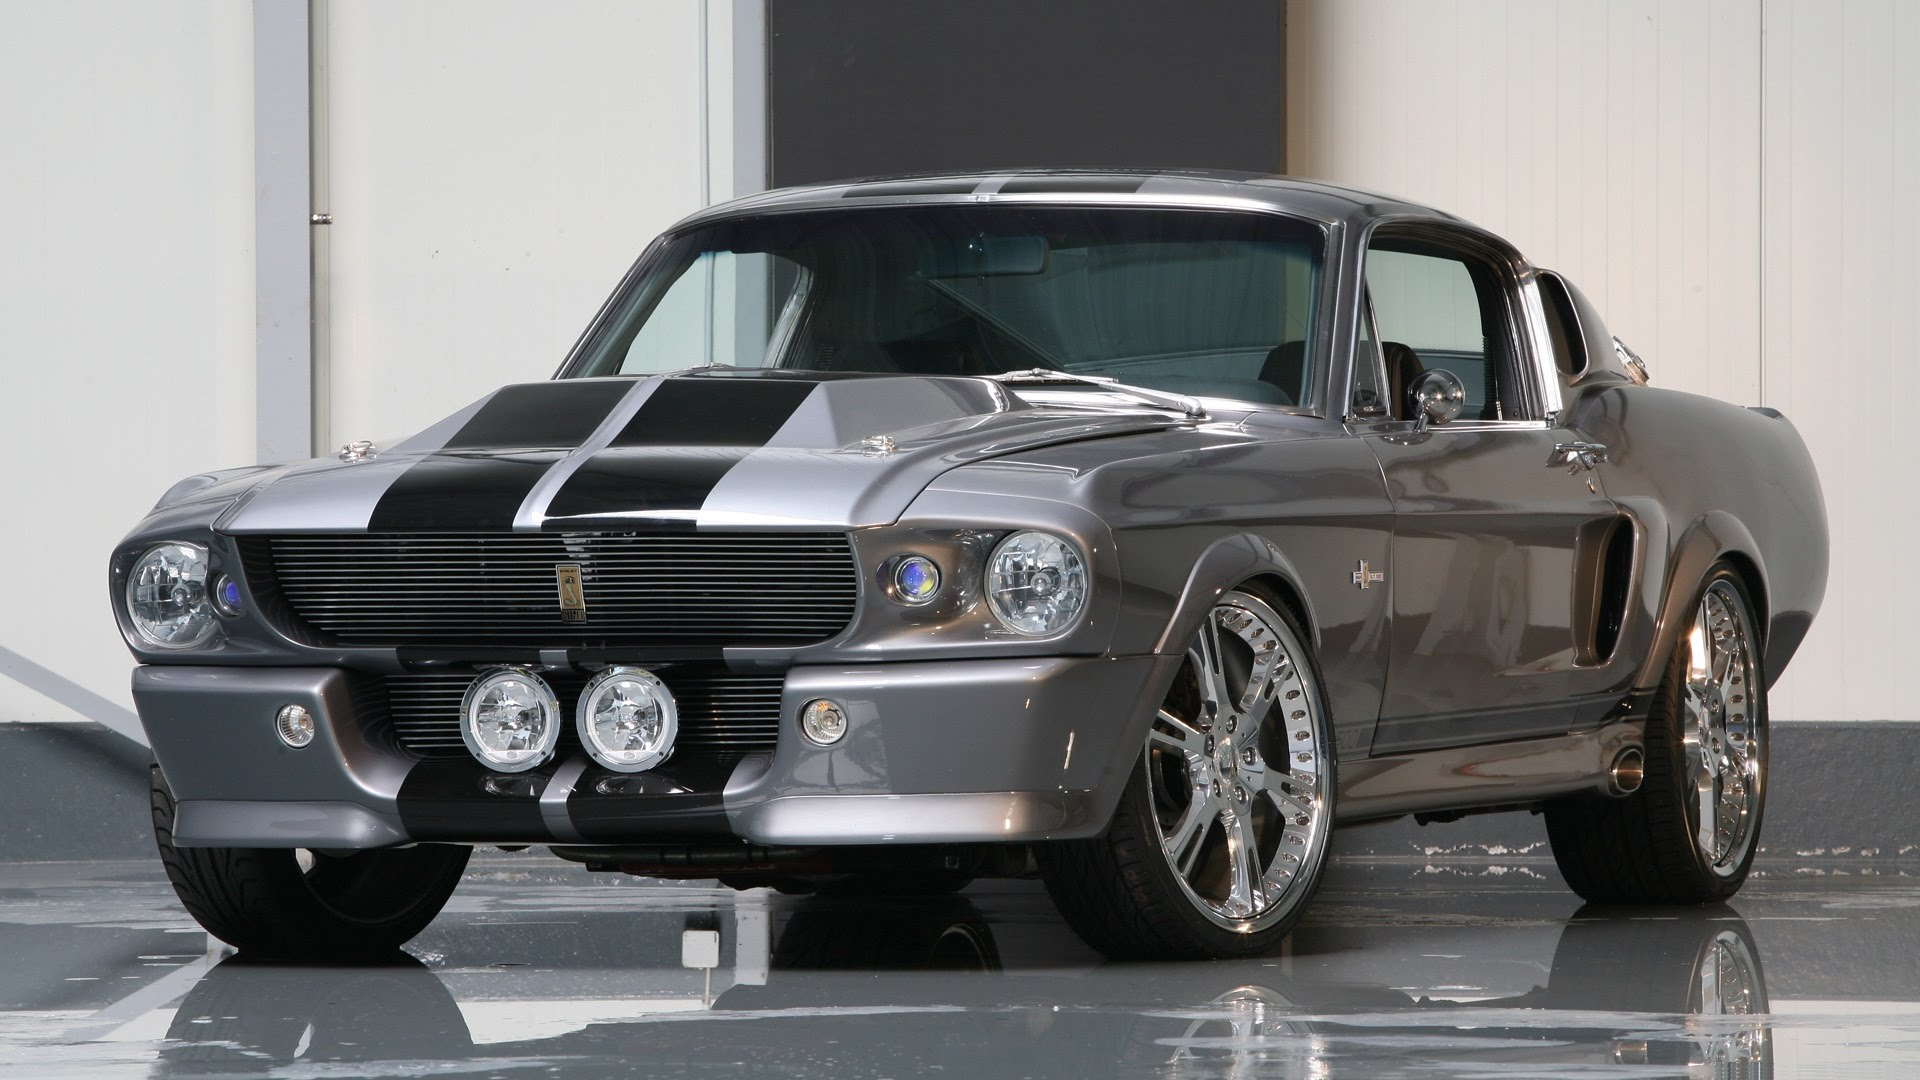 1967 Ford Mustang Shelby GT500 Eleanor, Tuning in 2009 By Wheelsandmore Interior and Exterior